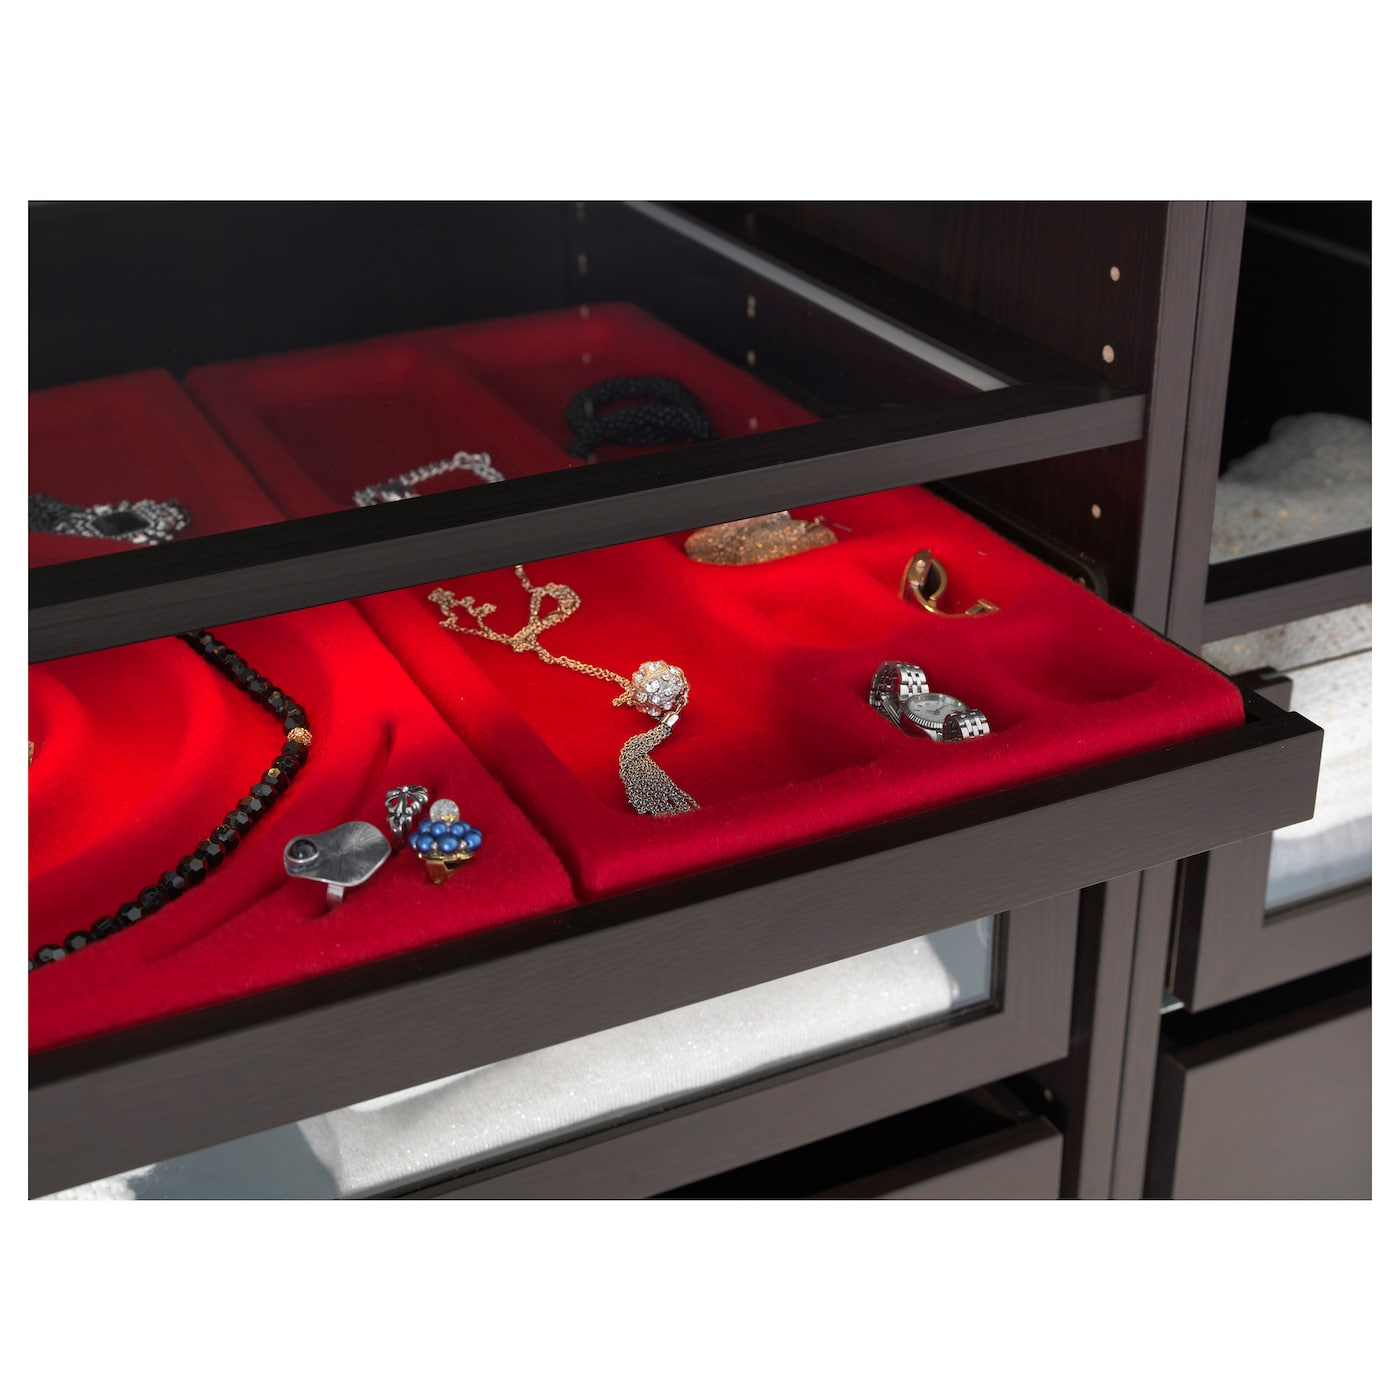 IKEA KOMPLEMENT jewellery insert for pull-out tray